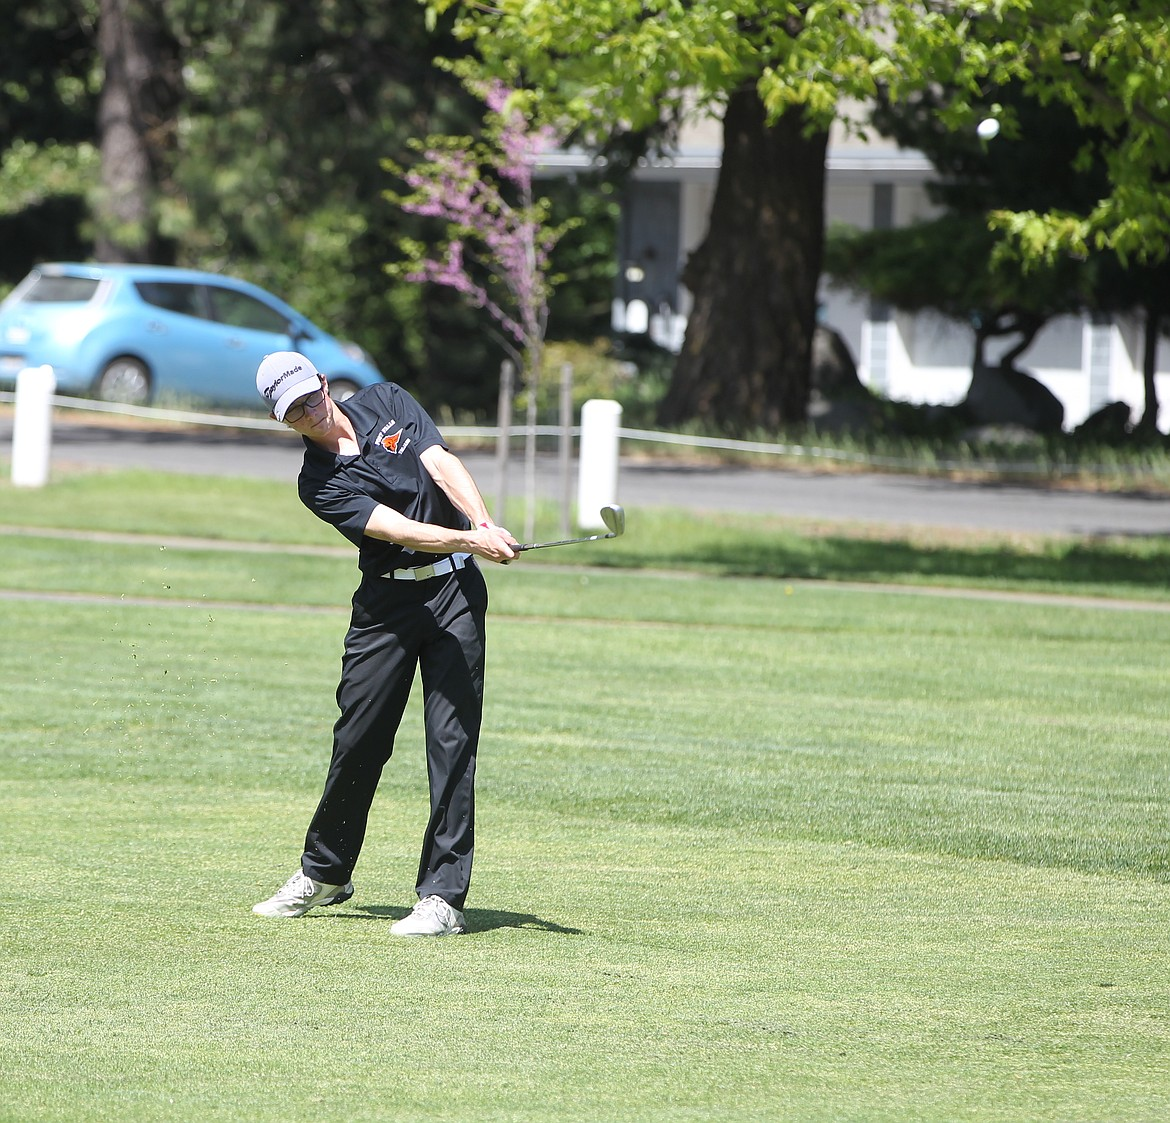 MARK NELKE/Press Boen Torgerson of Post Falls chips on the ninth hole at the state 5A golf tournament Monday at Avondale Golf Club in Hayden Lake.